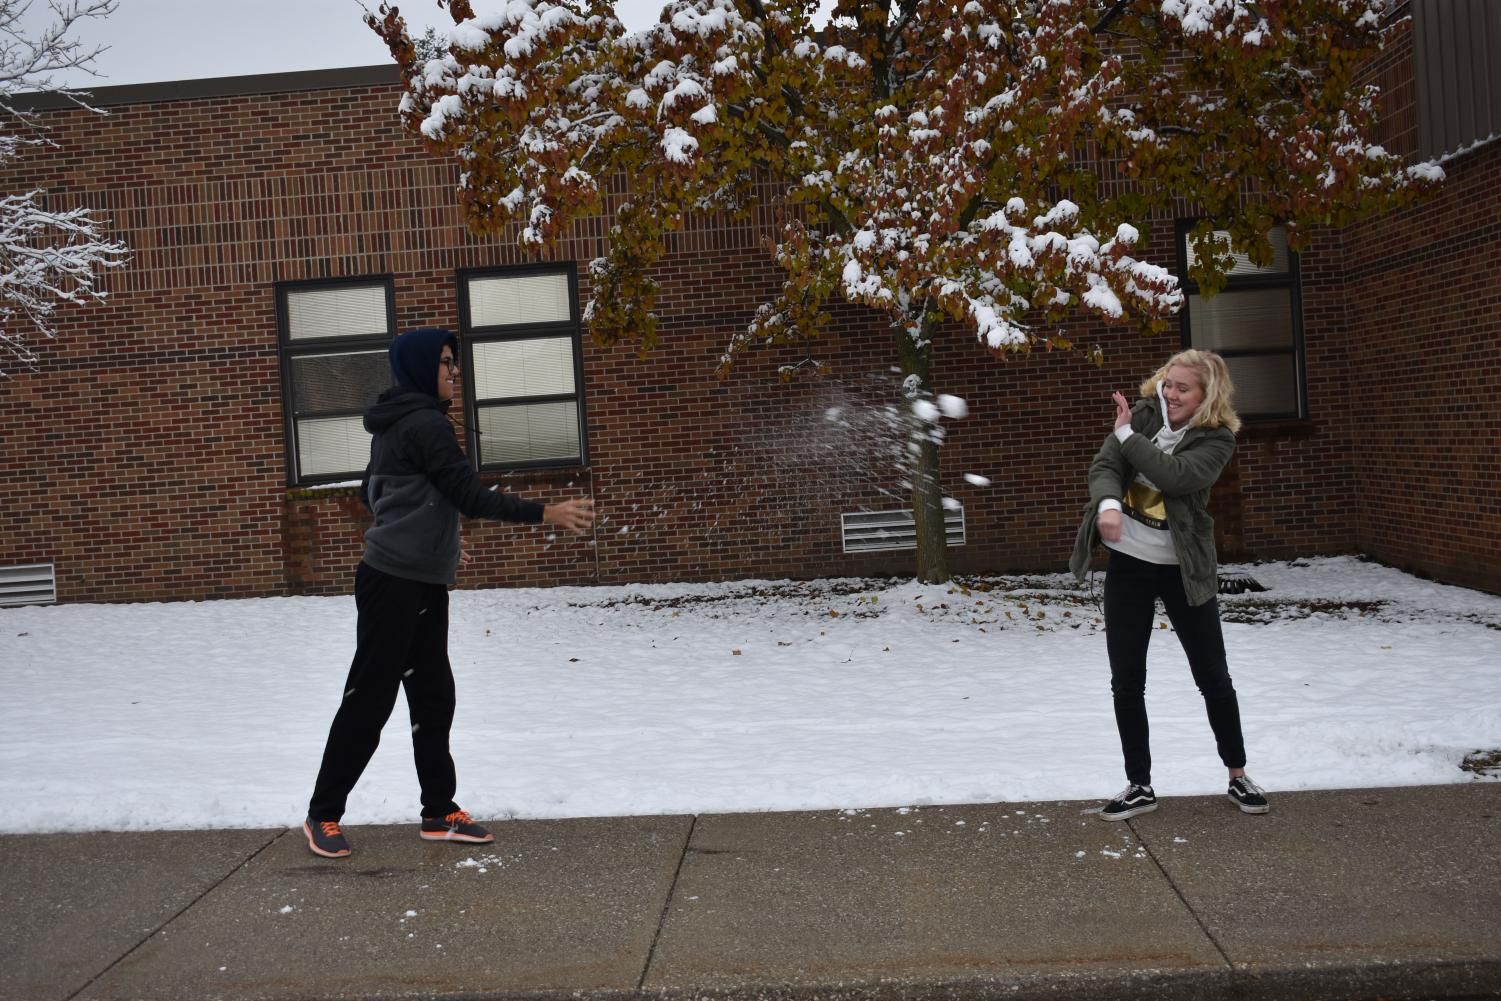 Gui (left) enjoys the early snowfall in St. Louis, and he shows it by throwing a snowball at Freja (right).